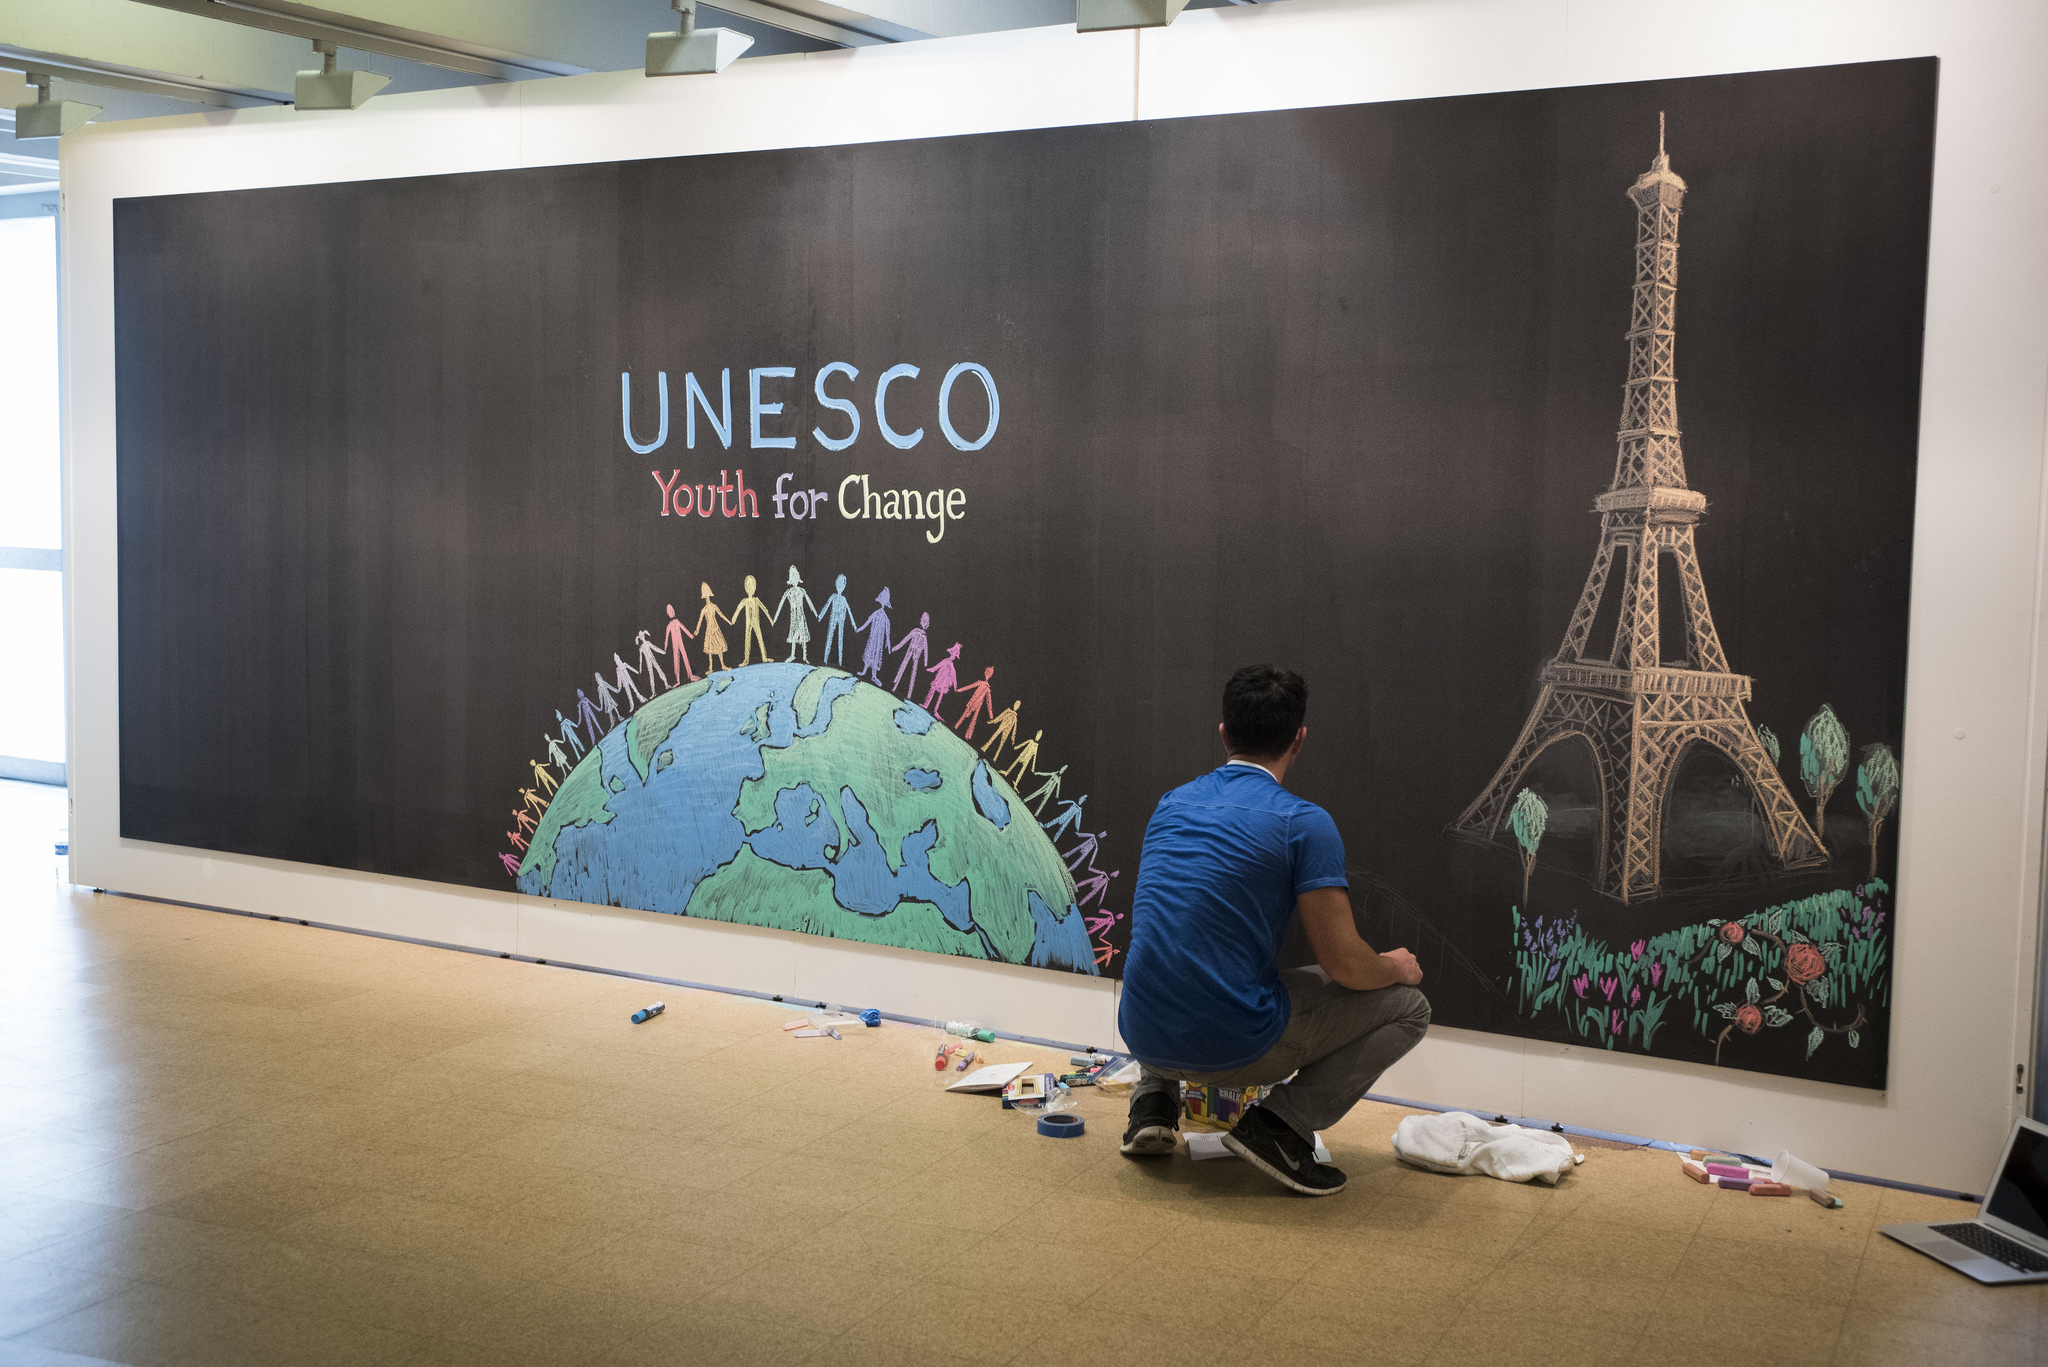 UNESCO Youth For Change